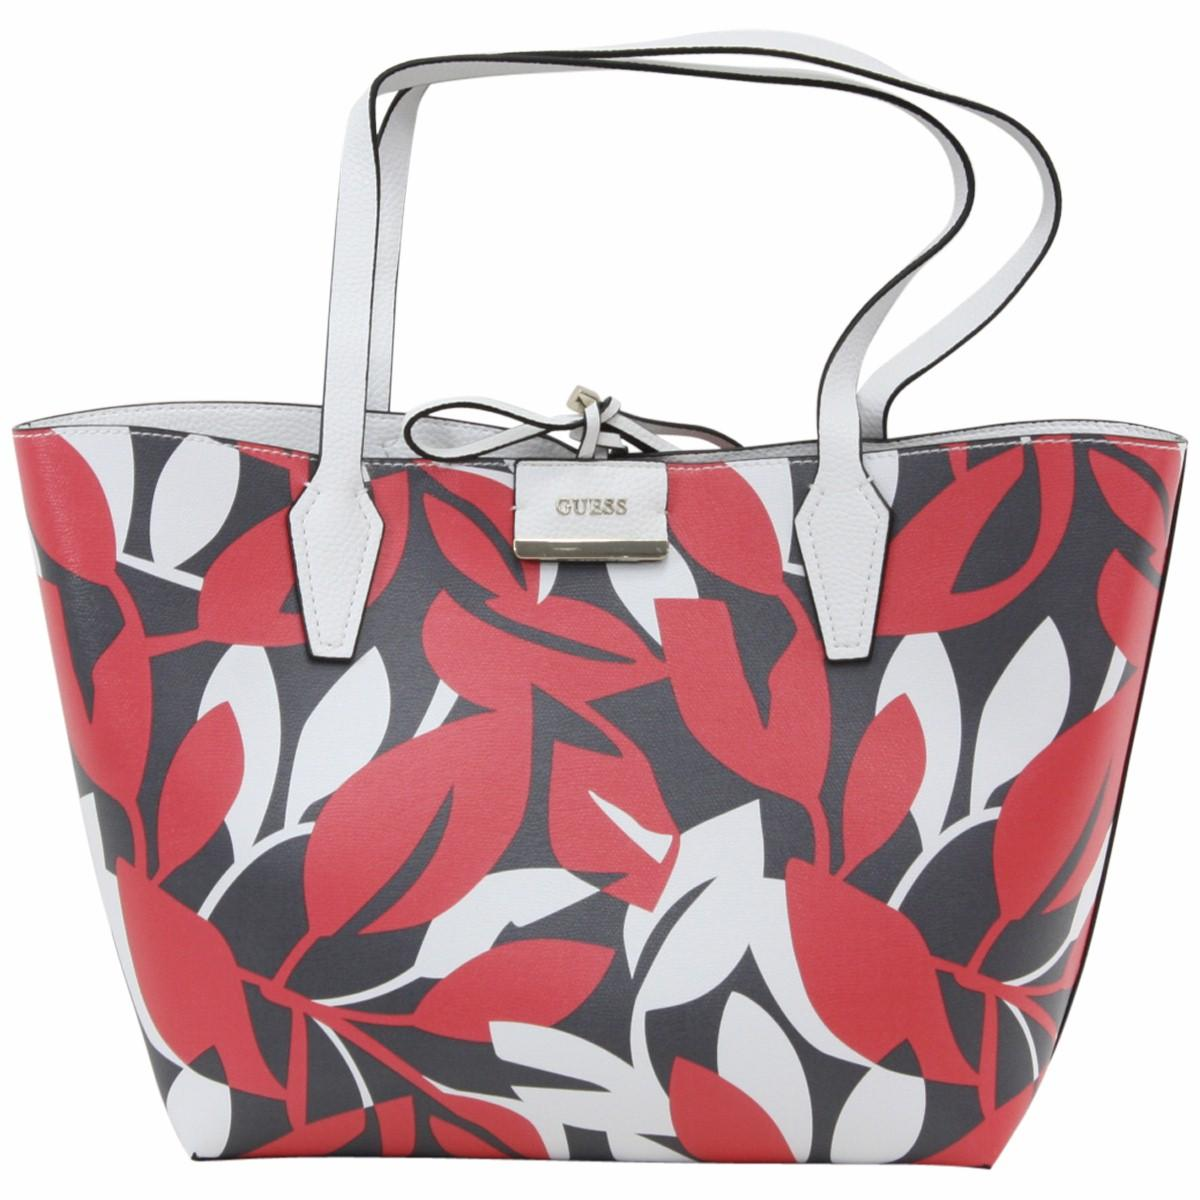 456110342 Guess Women's Bobbi Inside-Out Large Reversible Tote Handbag Set by Guess.  Touch to zoom. 123456